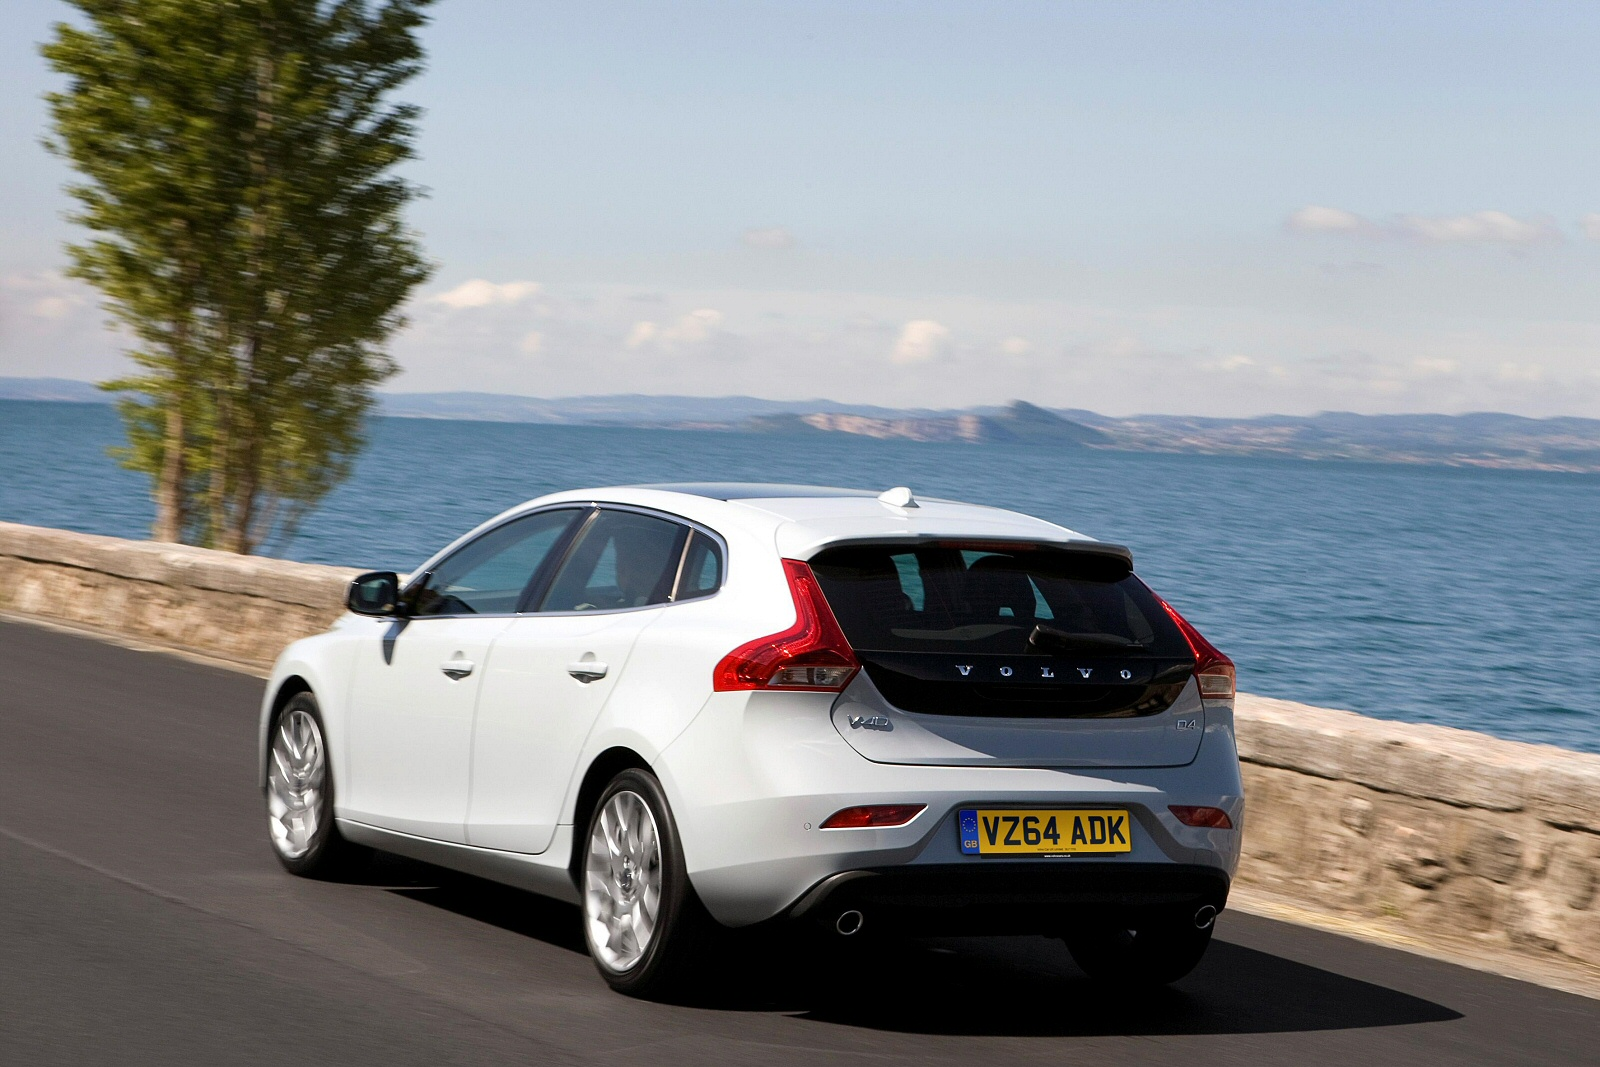 new volvo v40 d2 120 momentum nav plus 5dr diesel hatchback for sale bristol street. Black Bedroom Furniture Sets. Home Design Ideas